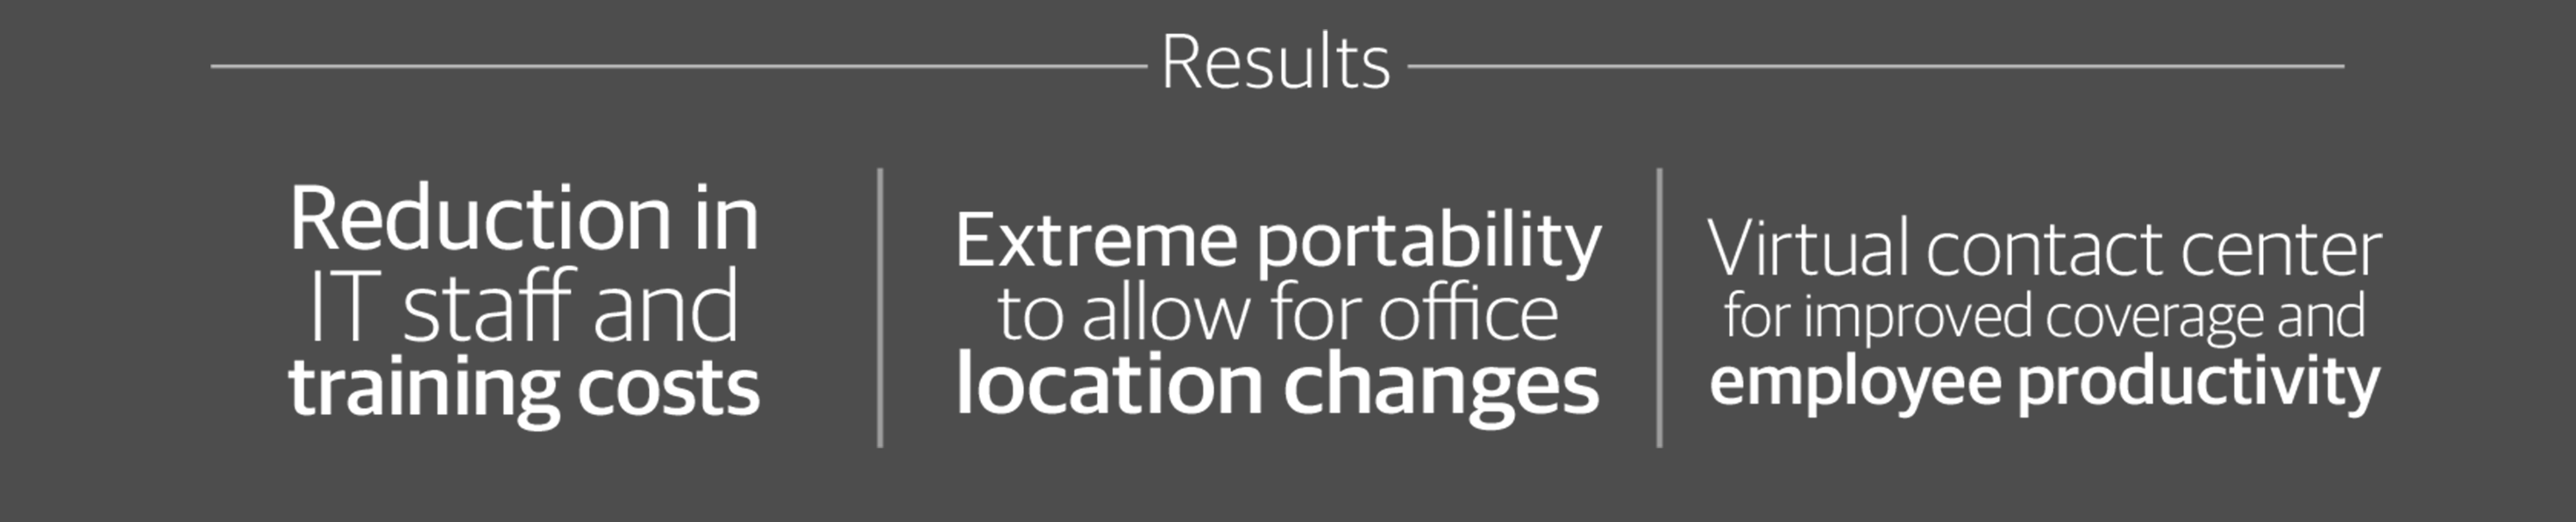 We deployed a new platform to 74 offices and implemented our cloud solution